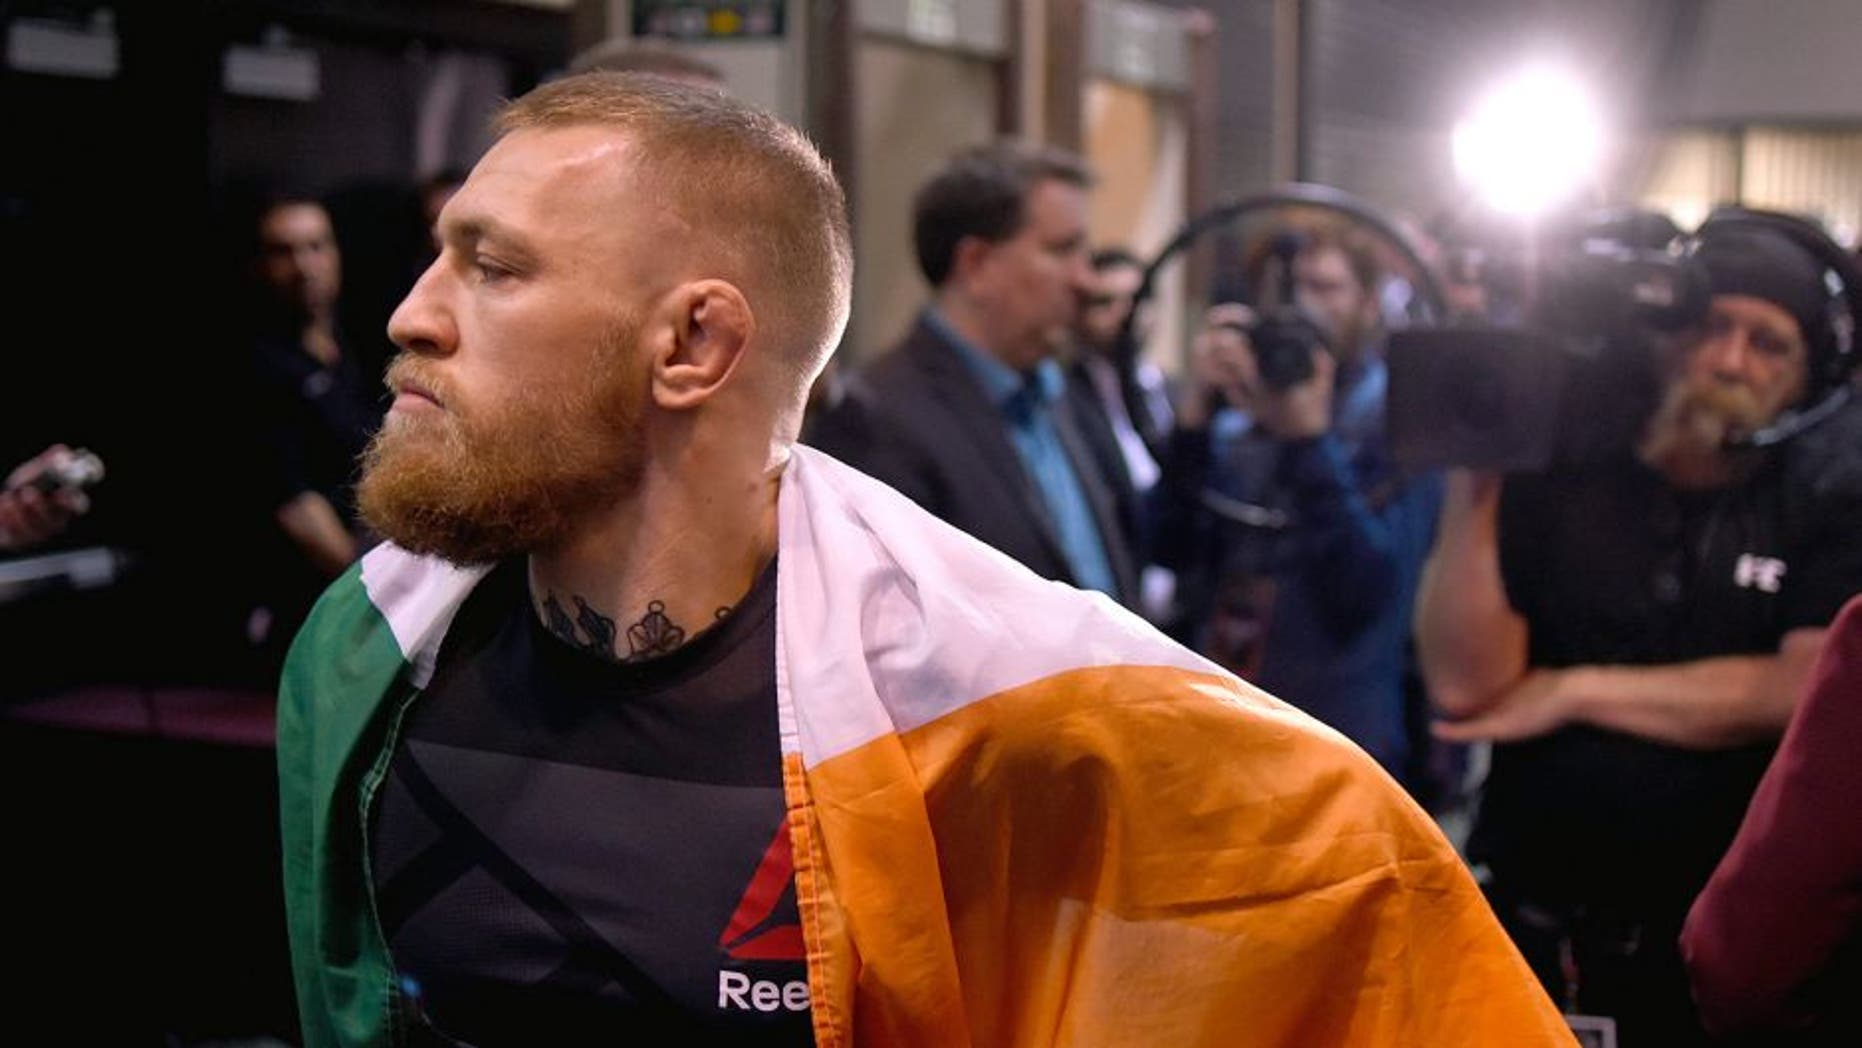 LAS VEGAS, NV - MARCH 05: Conor McGregor of Ireland prepares to walk to the Octagon to face Nate Diaz during the UFC 196 event inside MGM Grand Garden Arena on March 5, 2016 in Las Vegas, Nevada. (Photo by Todd Lussier/Zuffa LLC/Zuffa LLC via Getty Images)